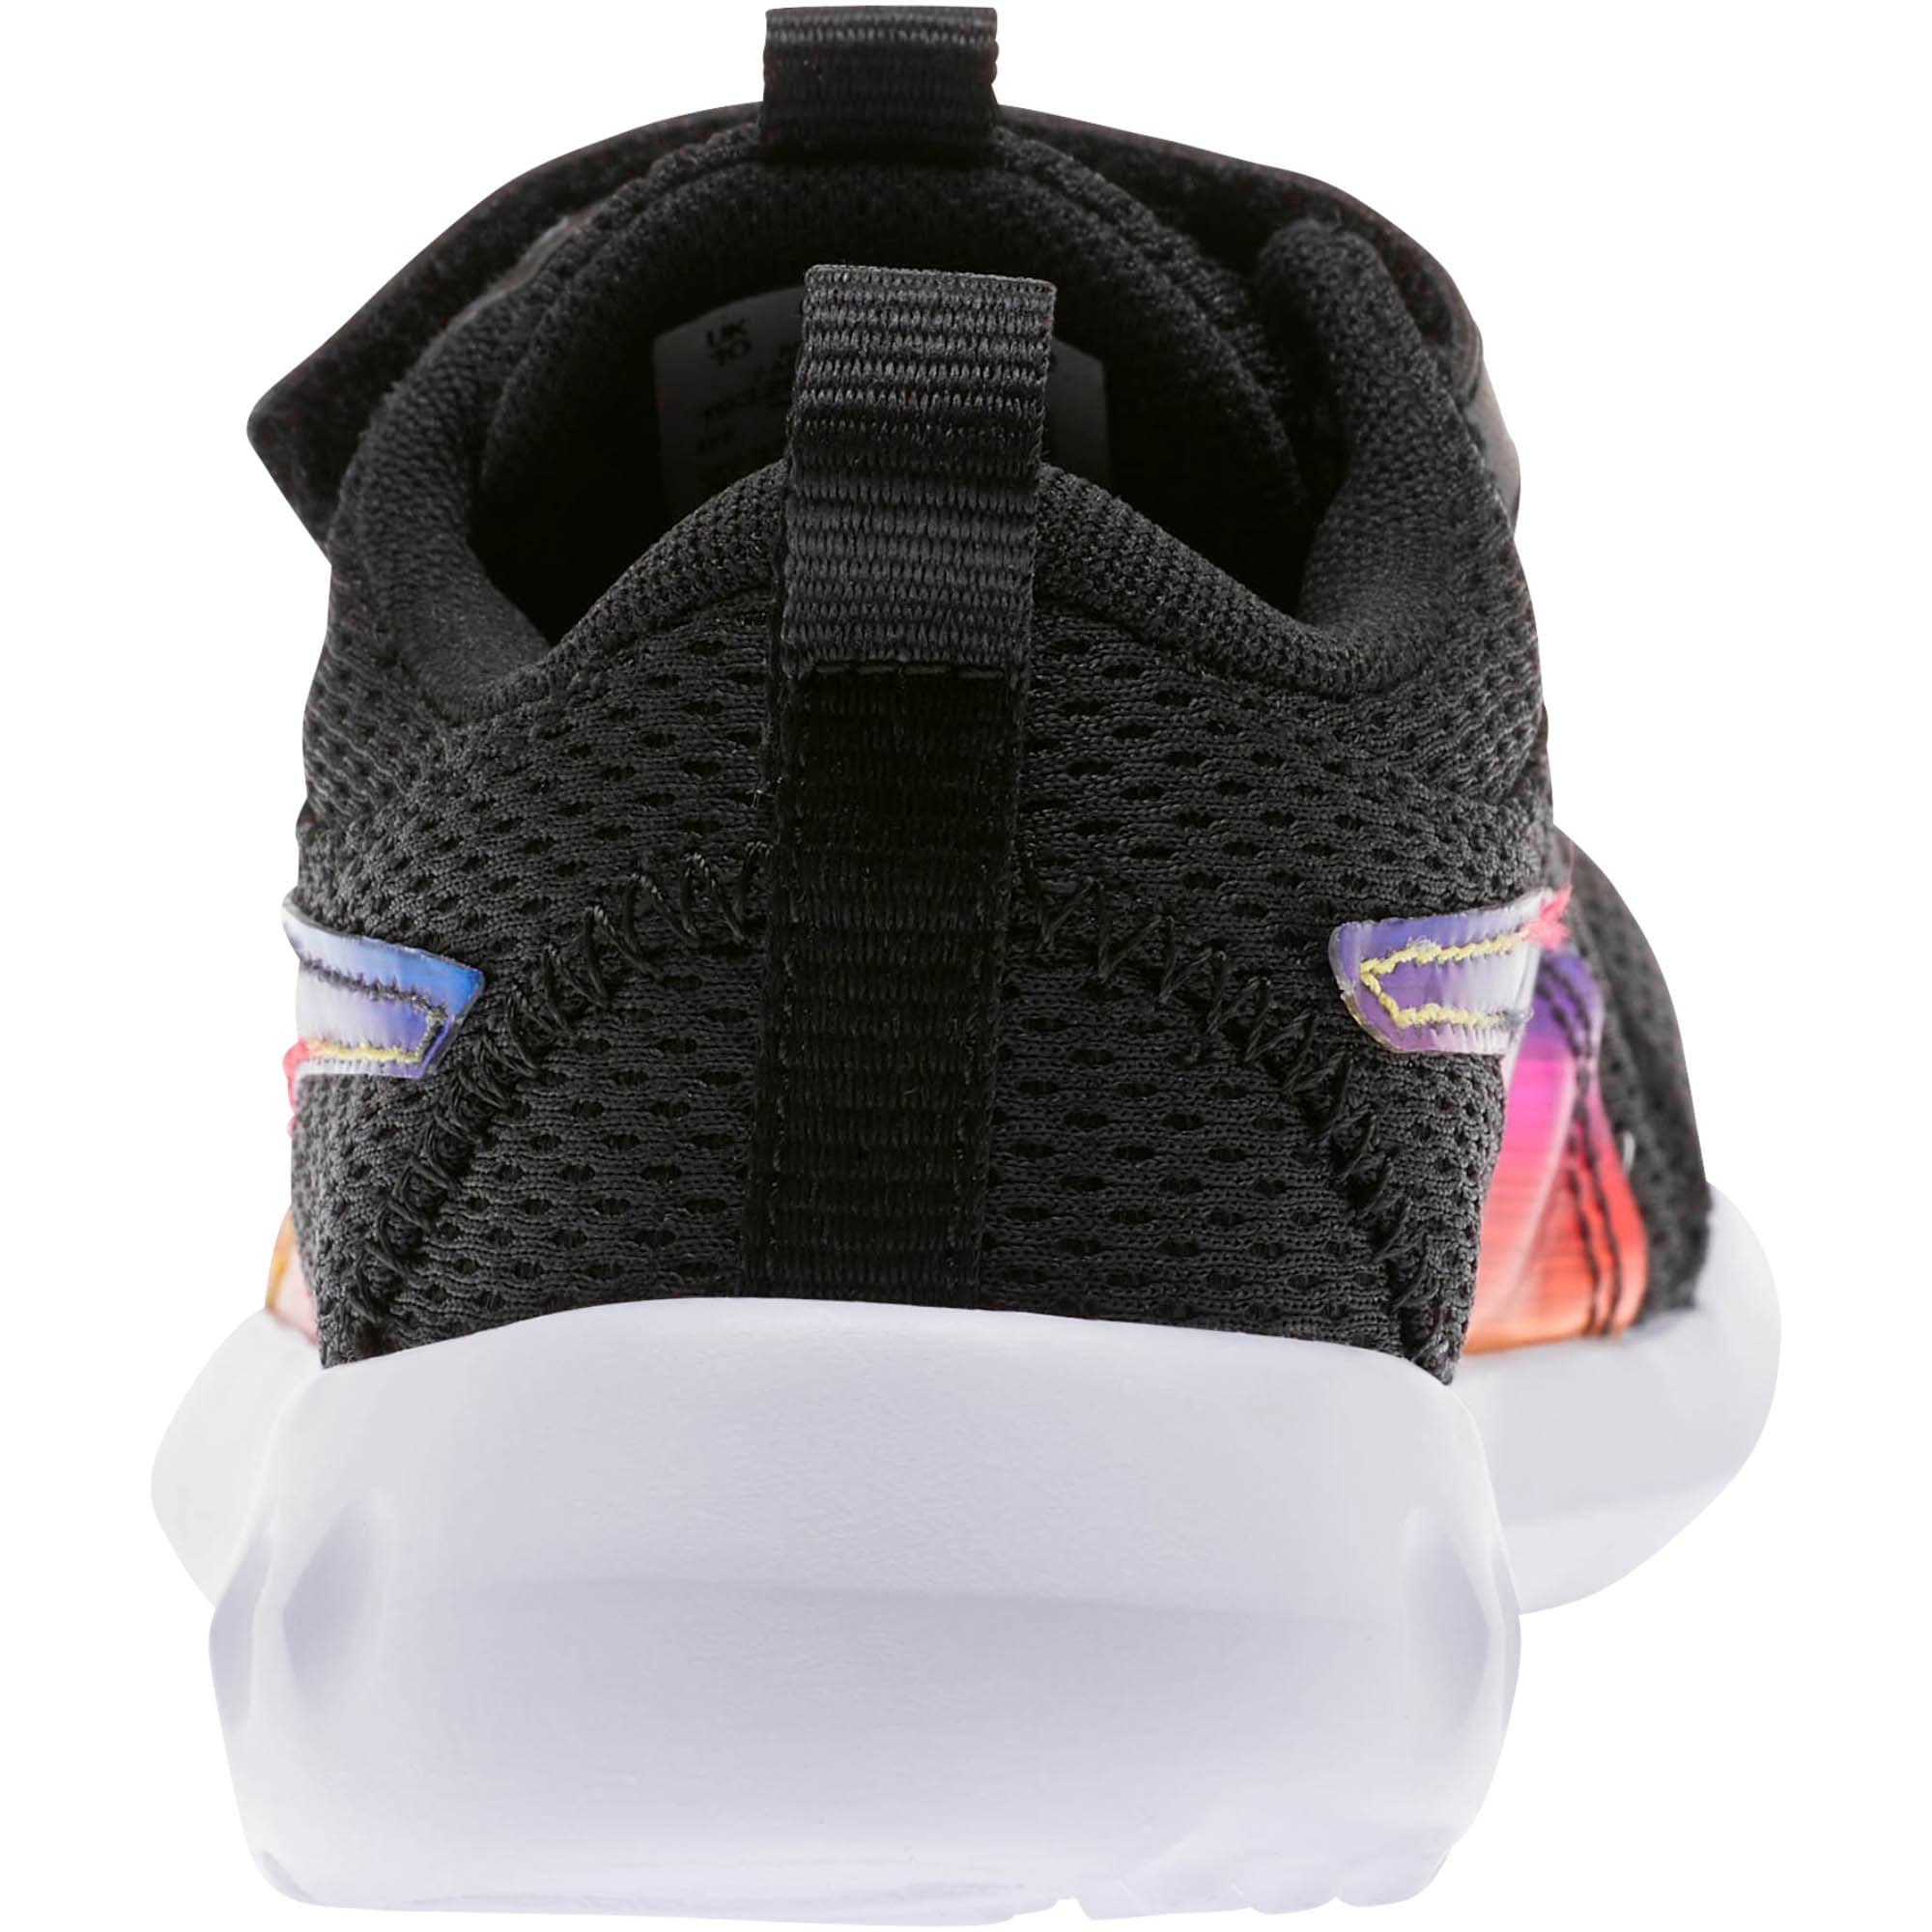 Thumbnail 3 of Carson 2 Iridescent Little Kids' Shoes, Puma Black-Puma White, medium